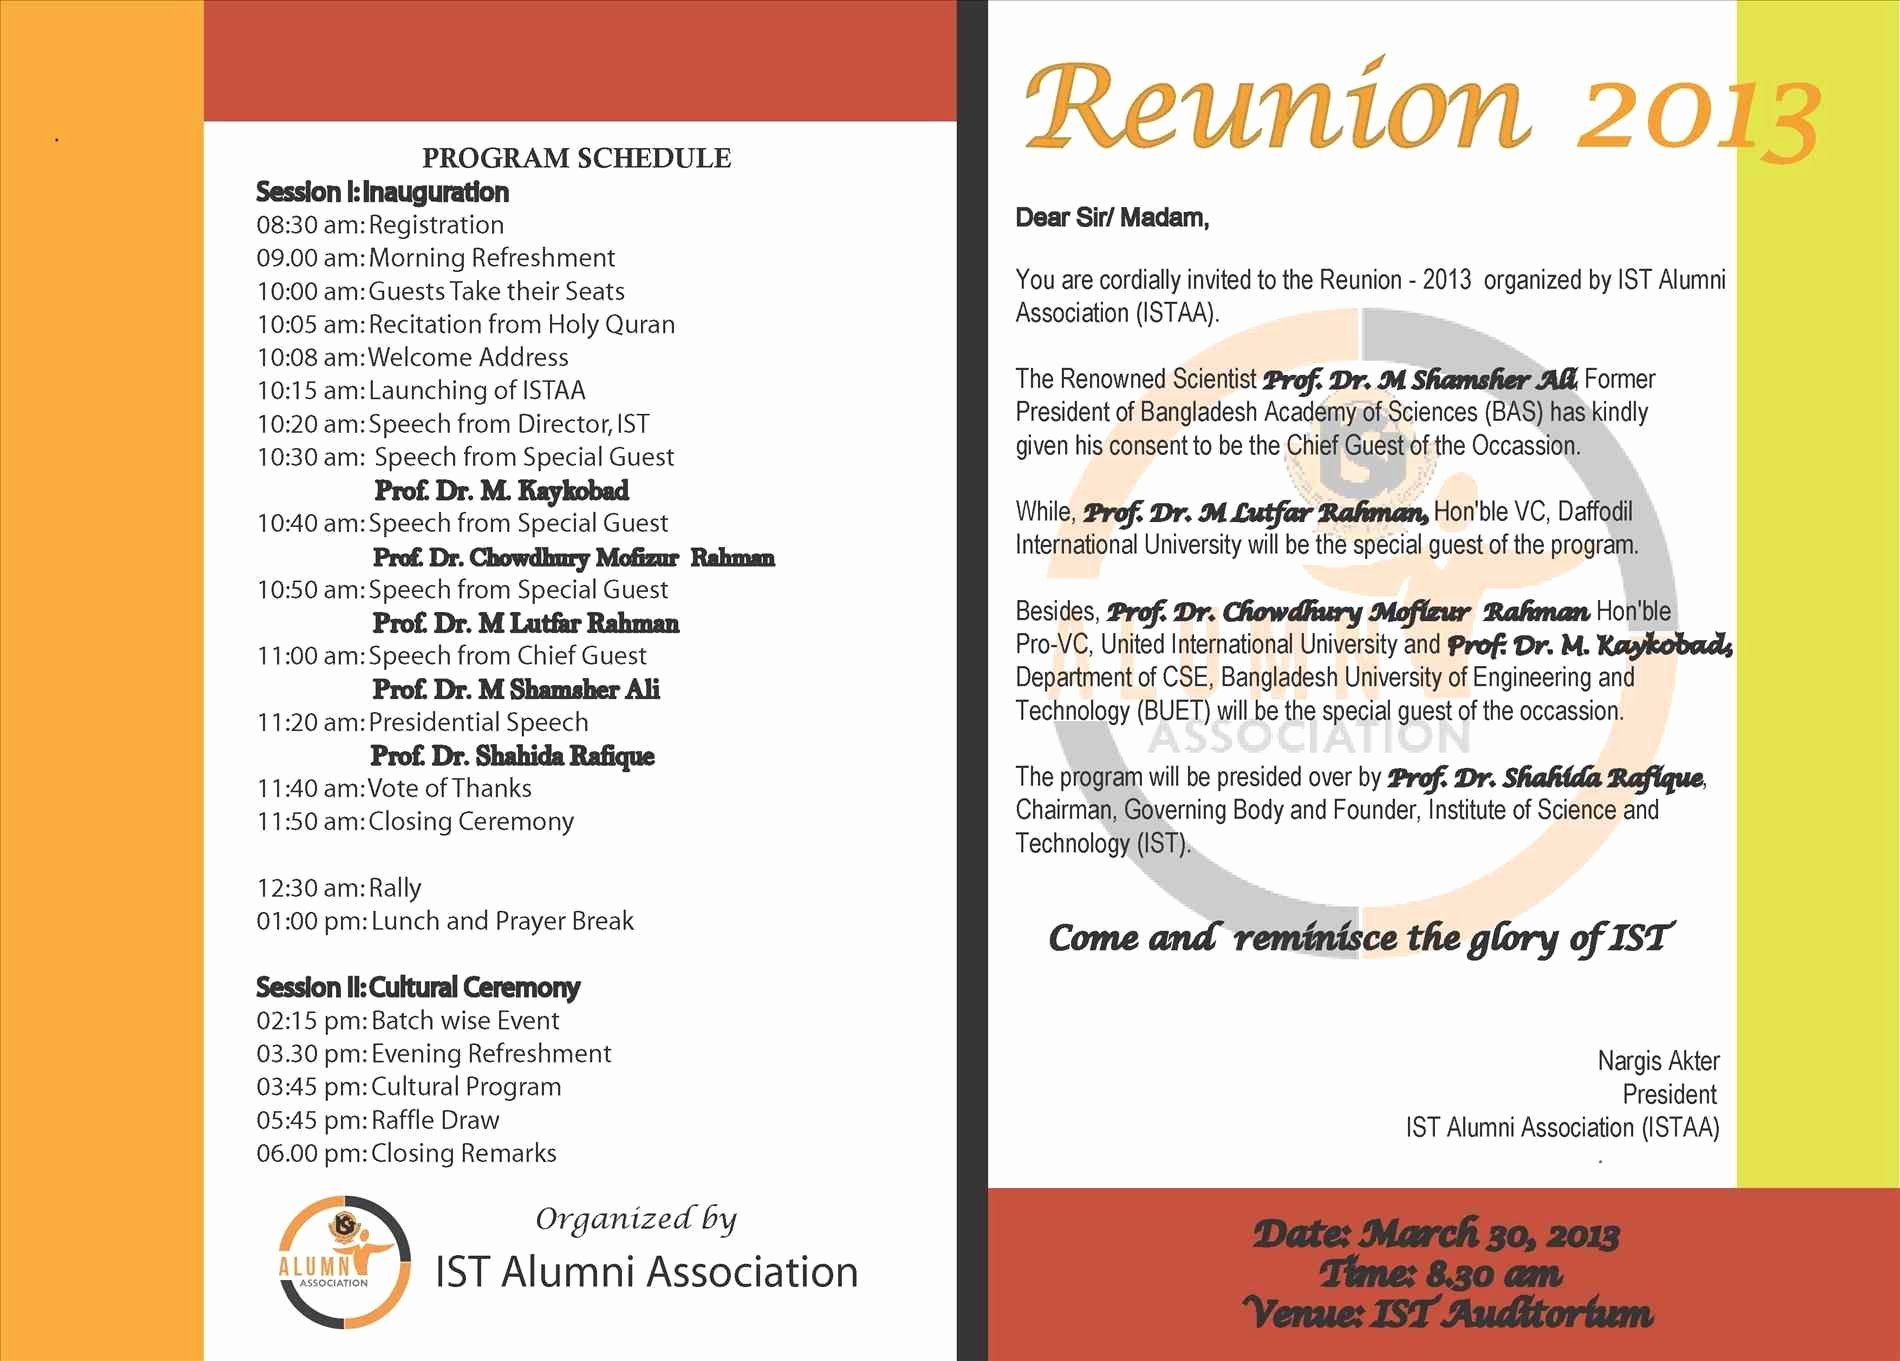 Family Reunion Agenda Template Beautiful Class Reunion Invitations Templates